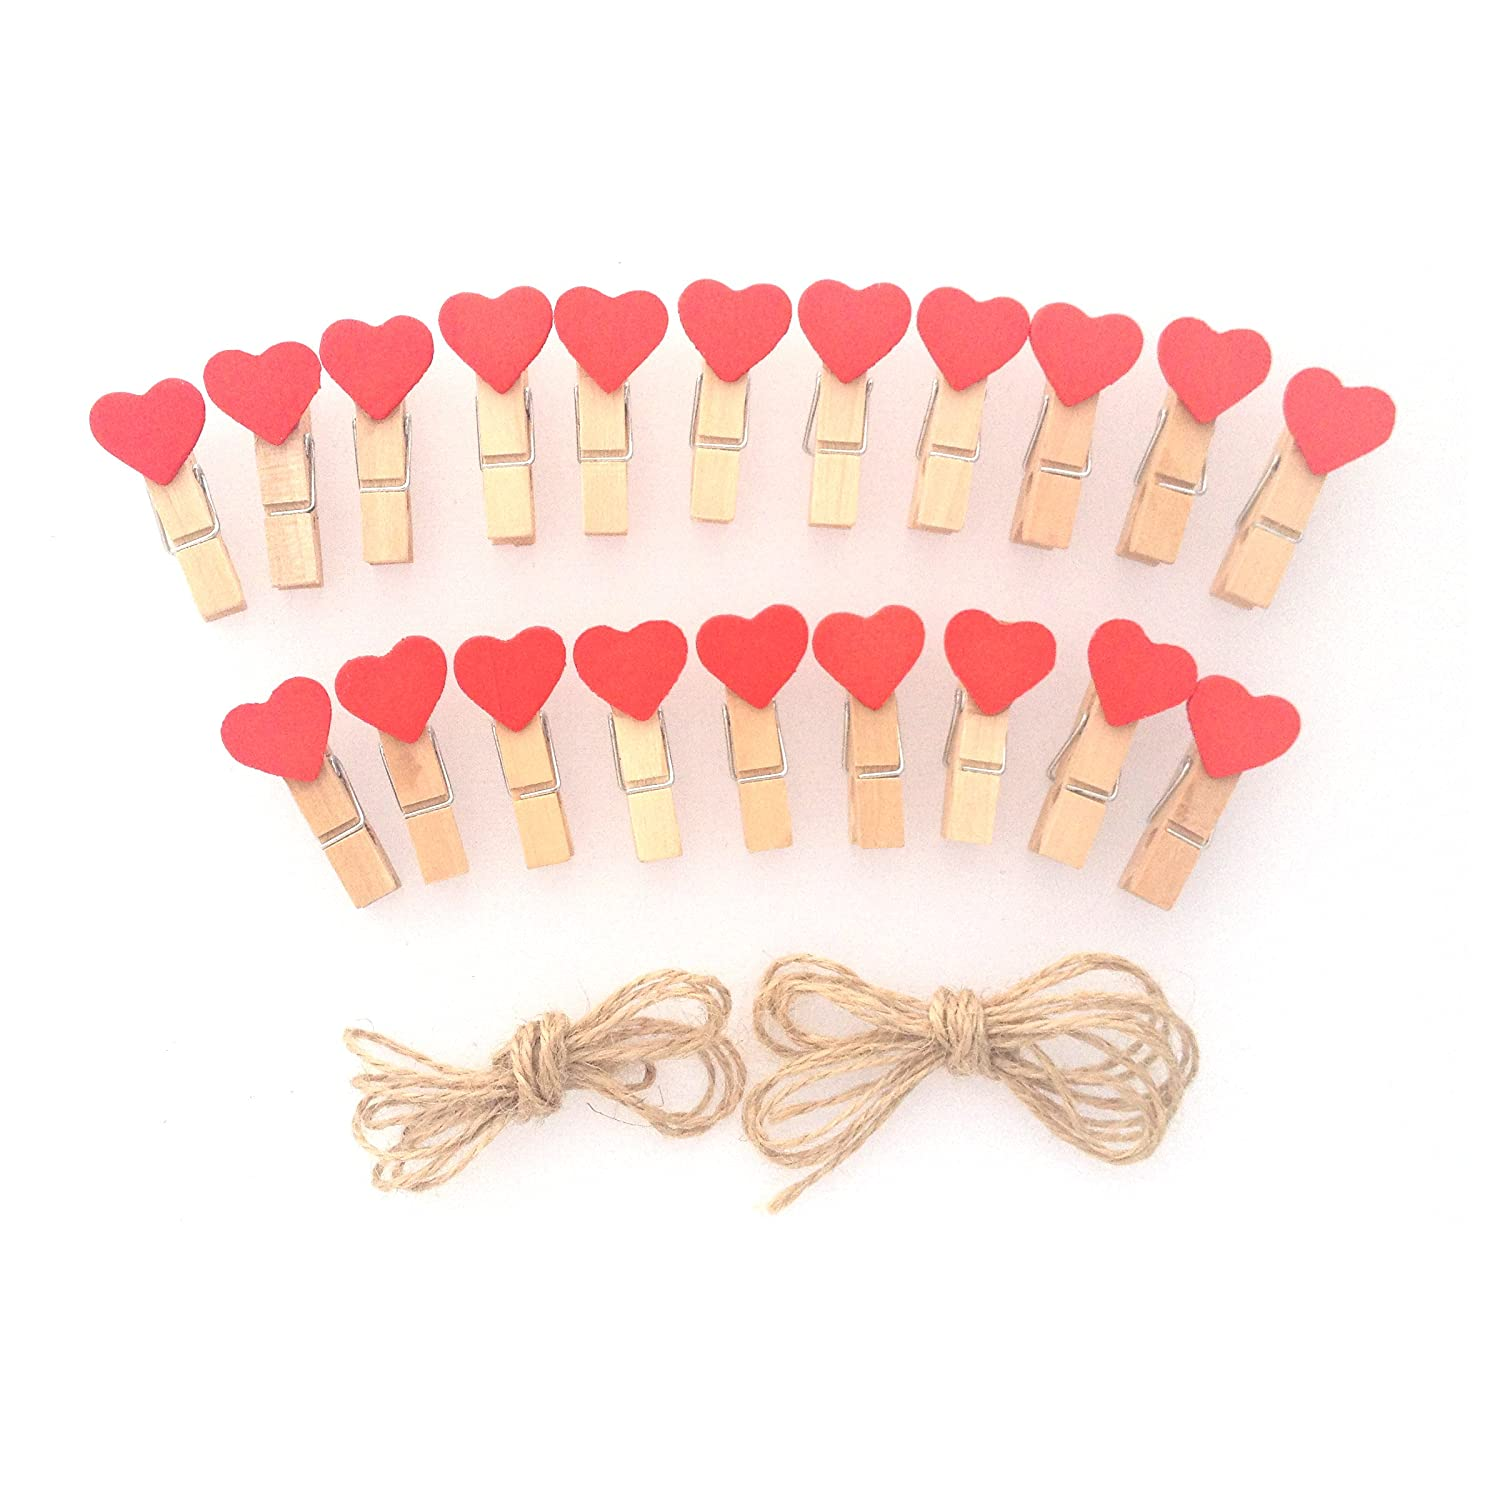 Lwr Crafts Red Heart Wooden Mini Clothespins 20 Pieces And Jute Cord 8ft by Amazon